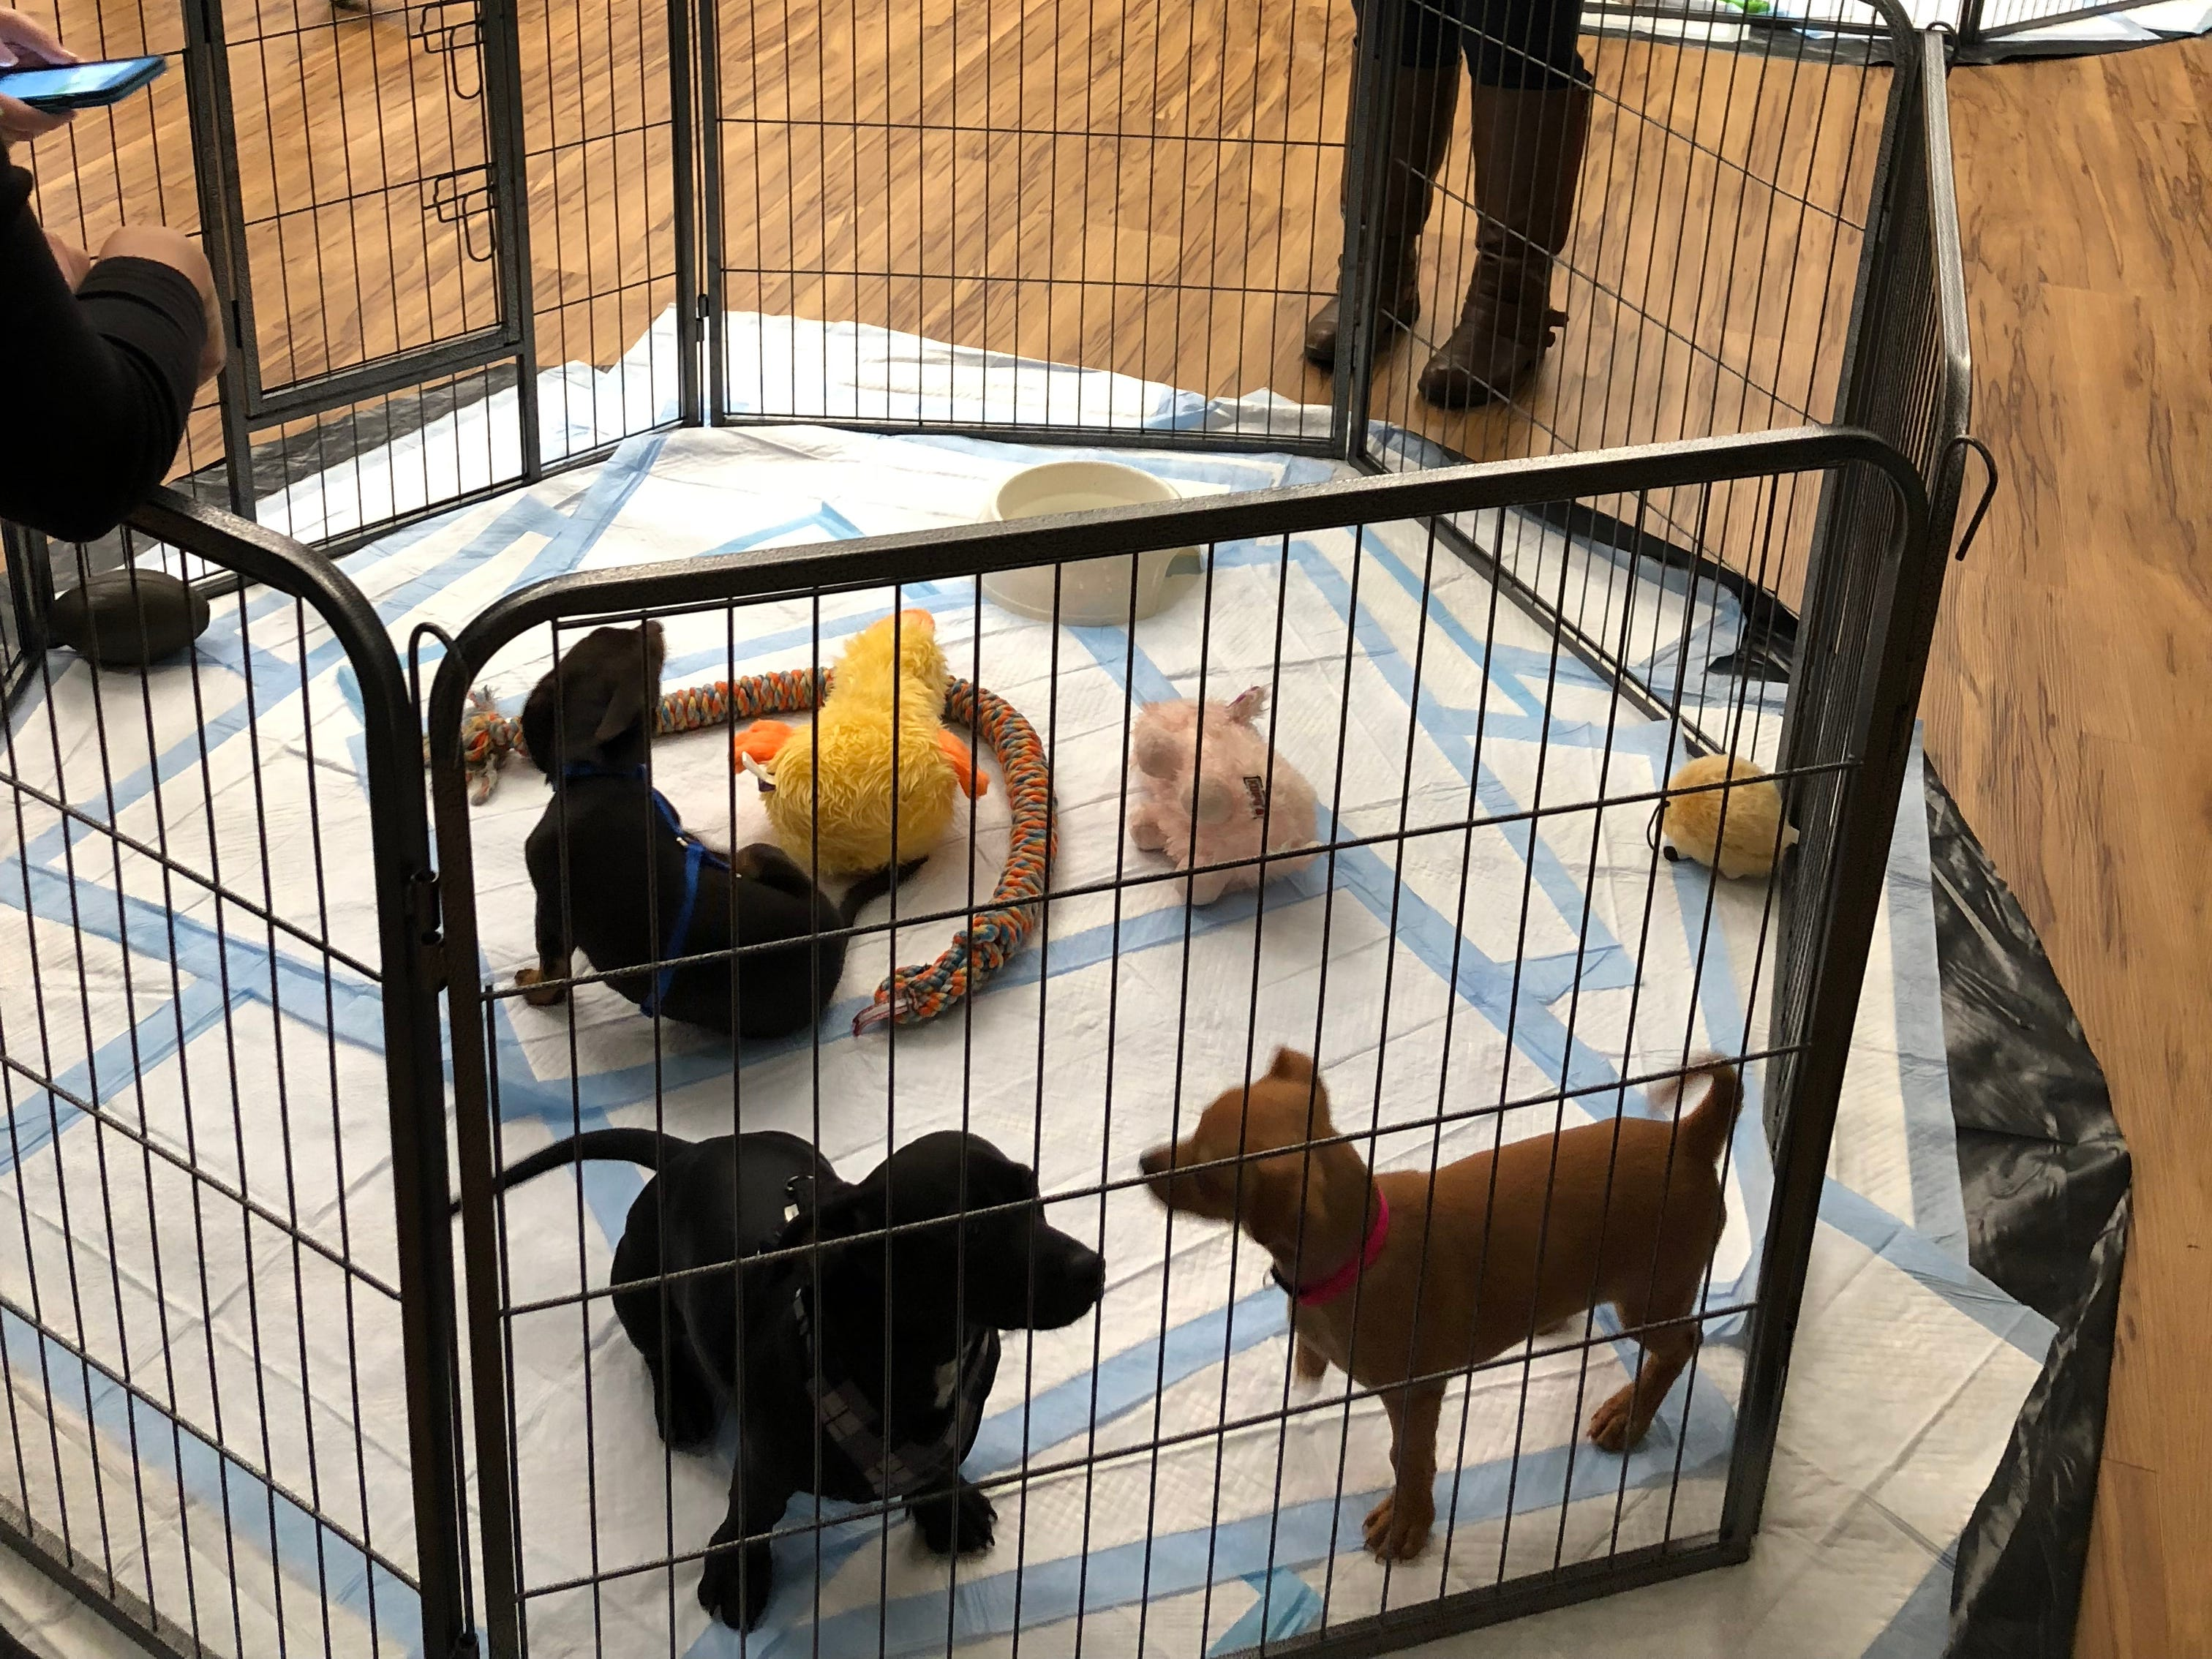 Molly Mae plays with other puppies while in New York City. She was in NYC to tape Animal Planet's 2019 Puppy Bowl, which will air at Feb. 3.